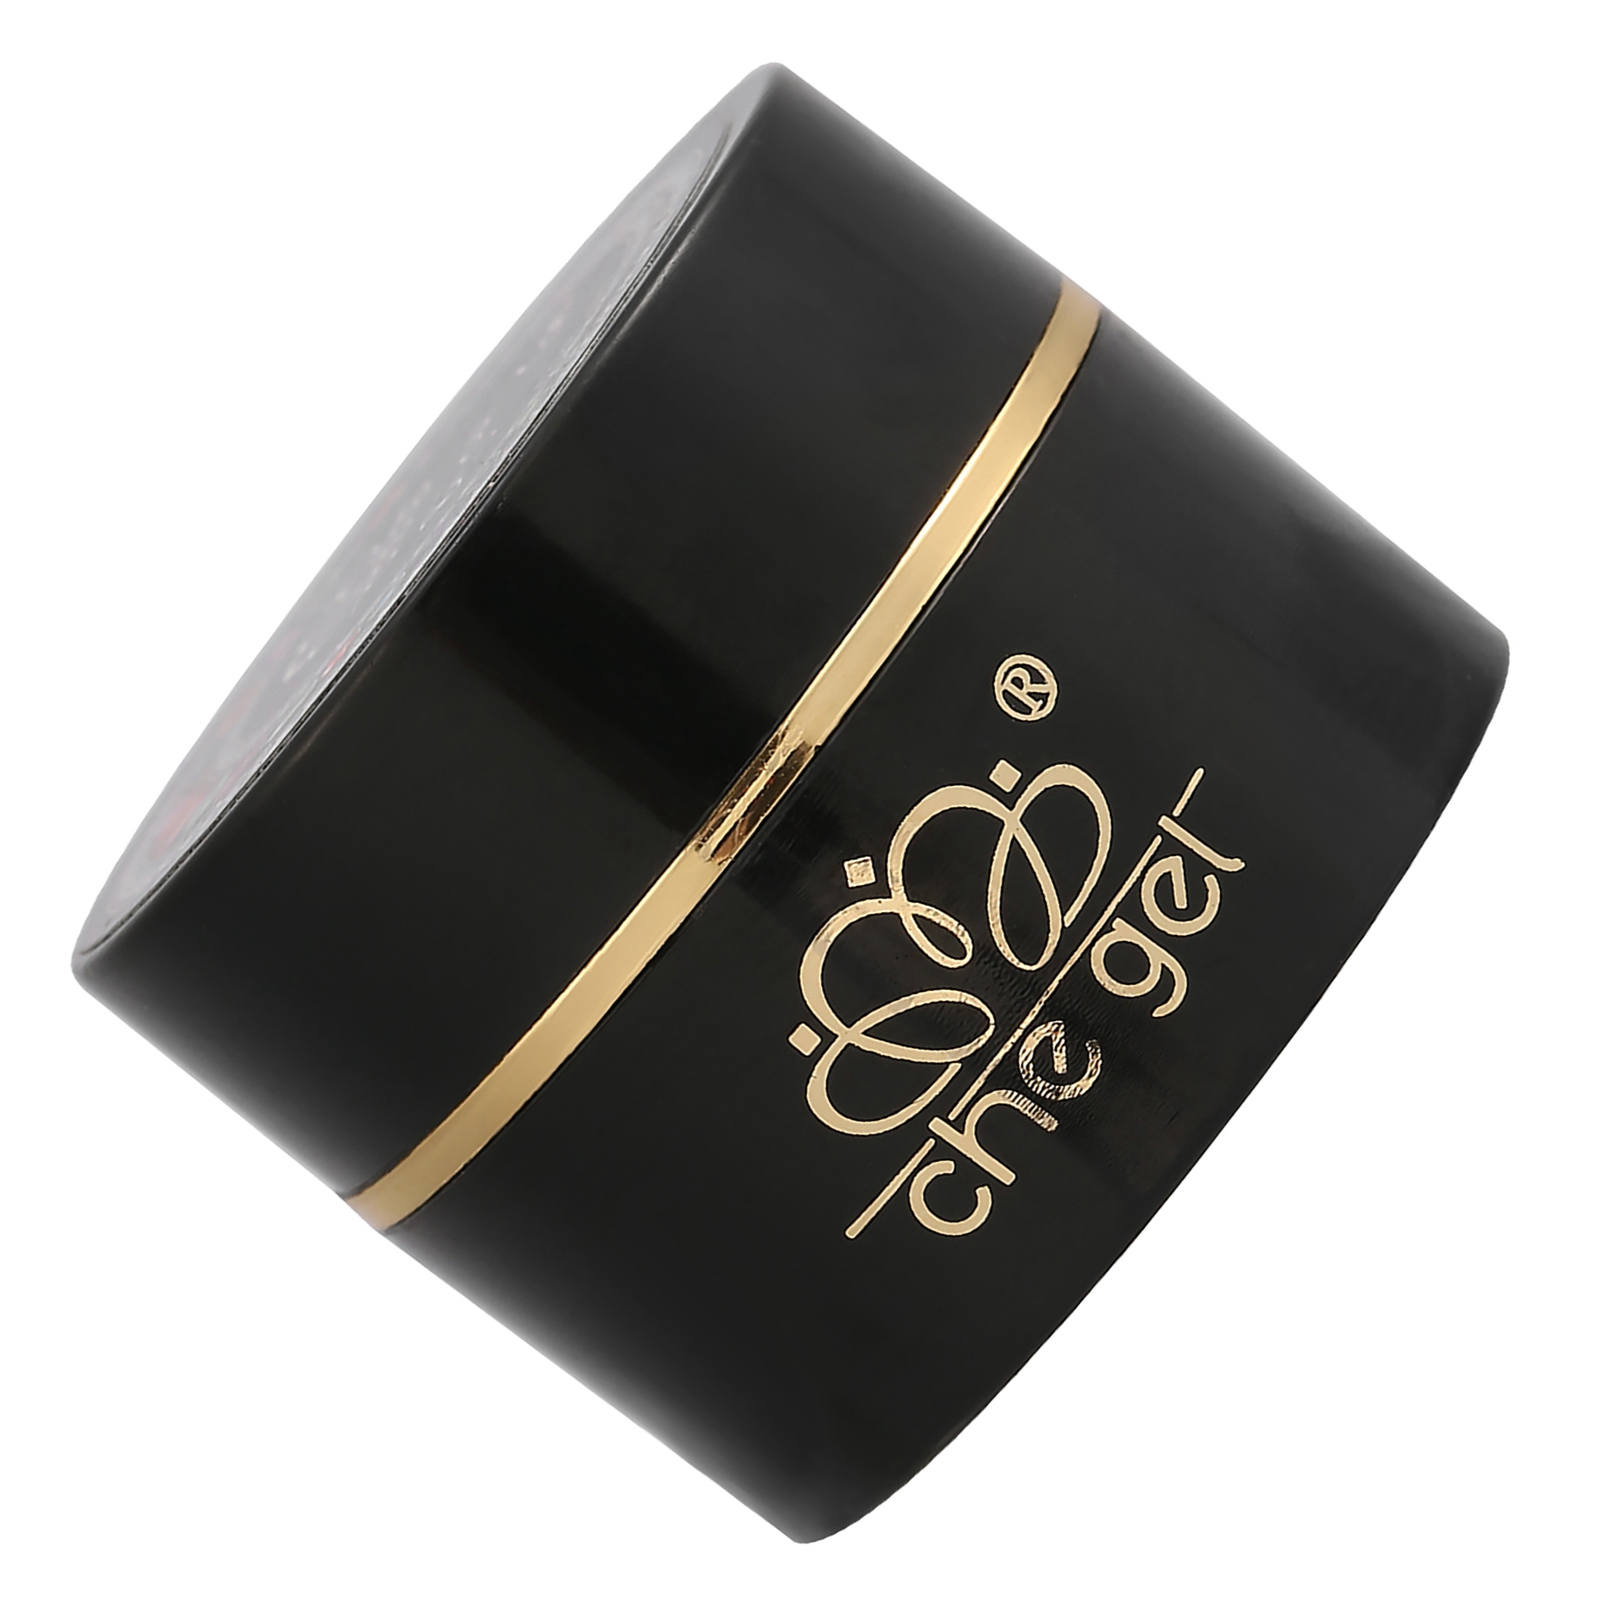 Pro Adhesive Thick Nail UV Gel Glue Rhinestone Accessory Decoration ...